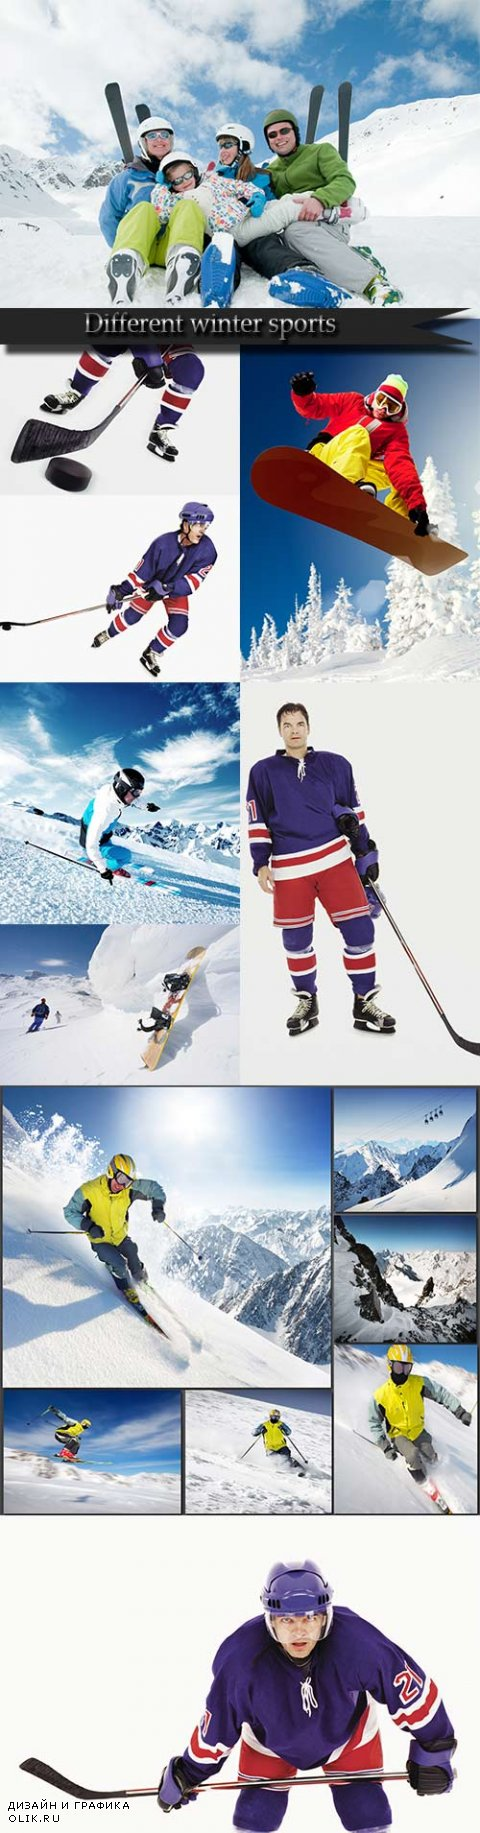 Different winter sports